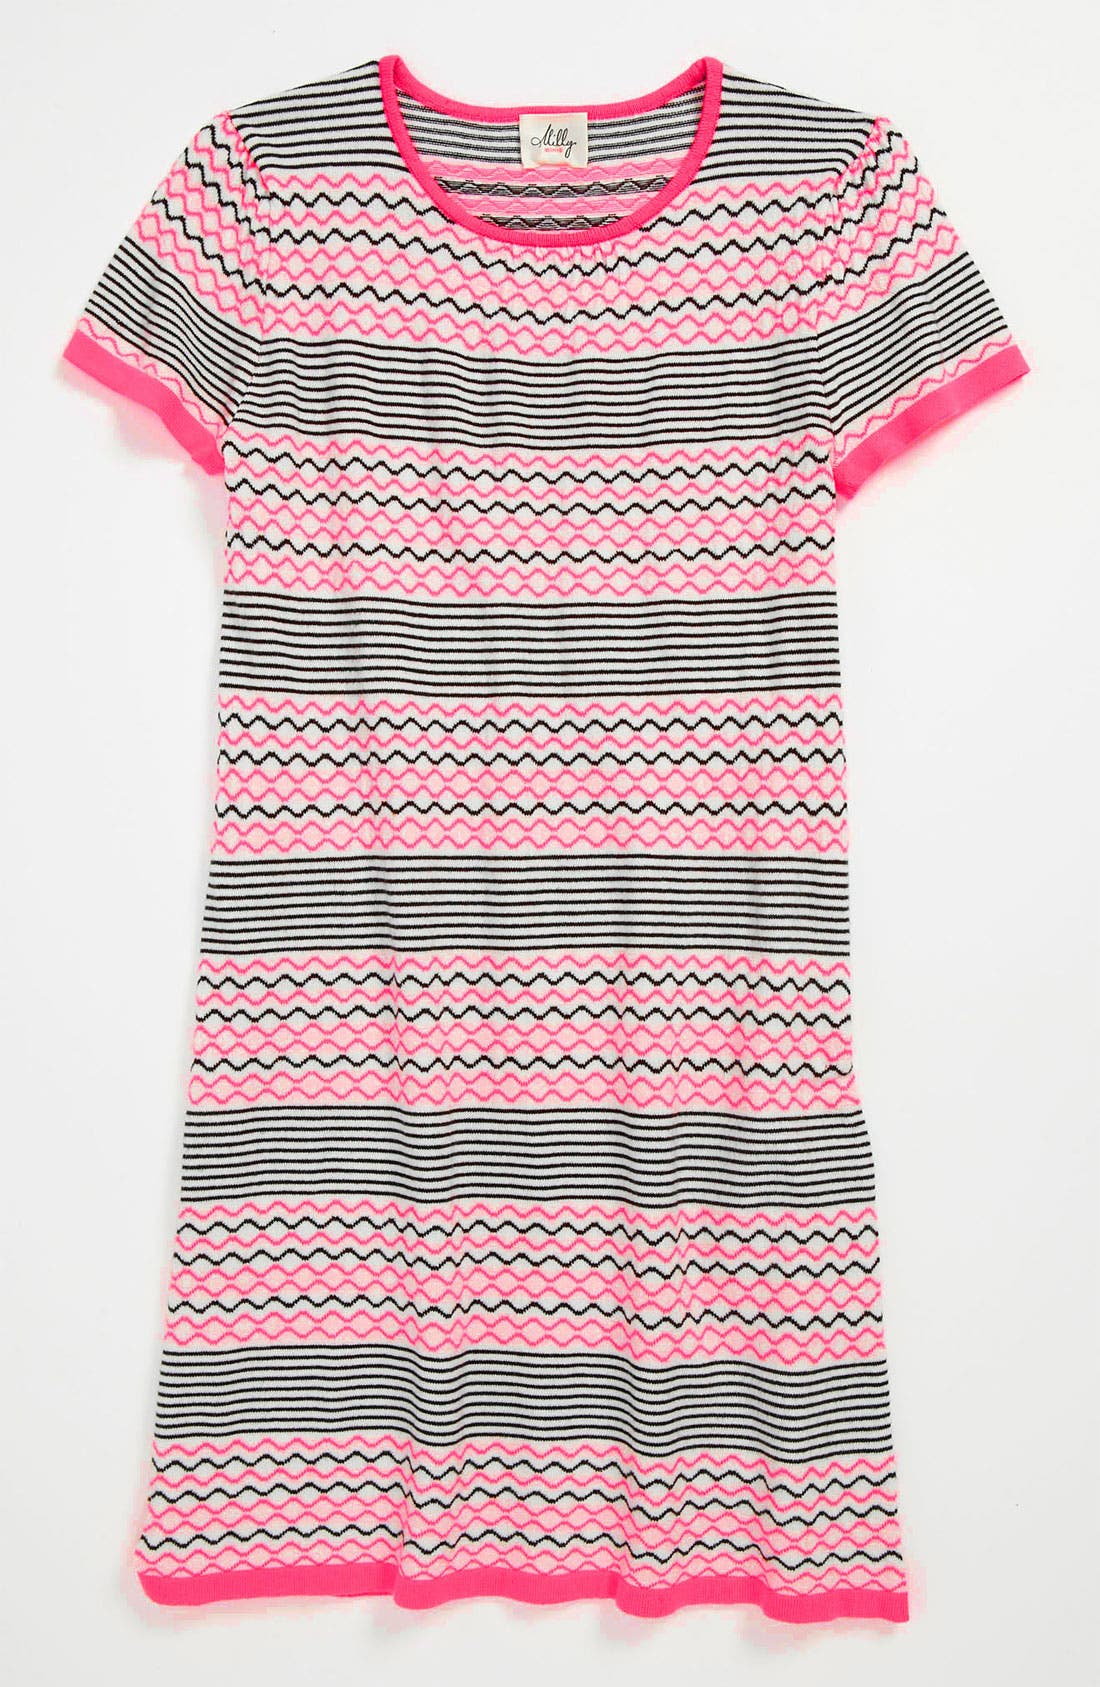 Alternate Image 1 Selected - Milly Minis Knit Dress (Little Girls & Big Girls)